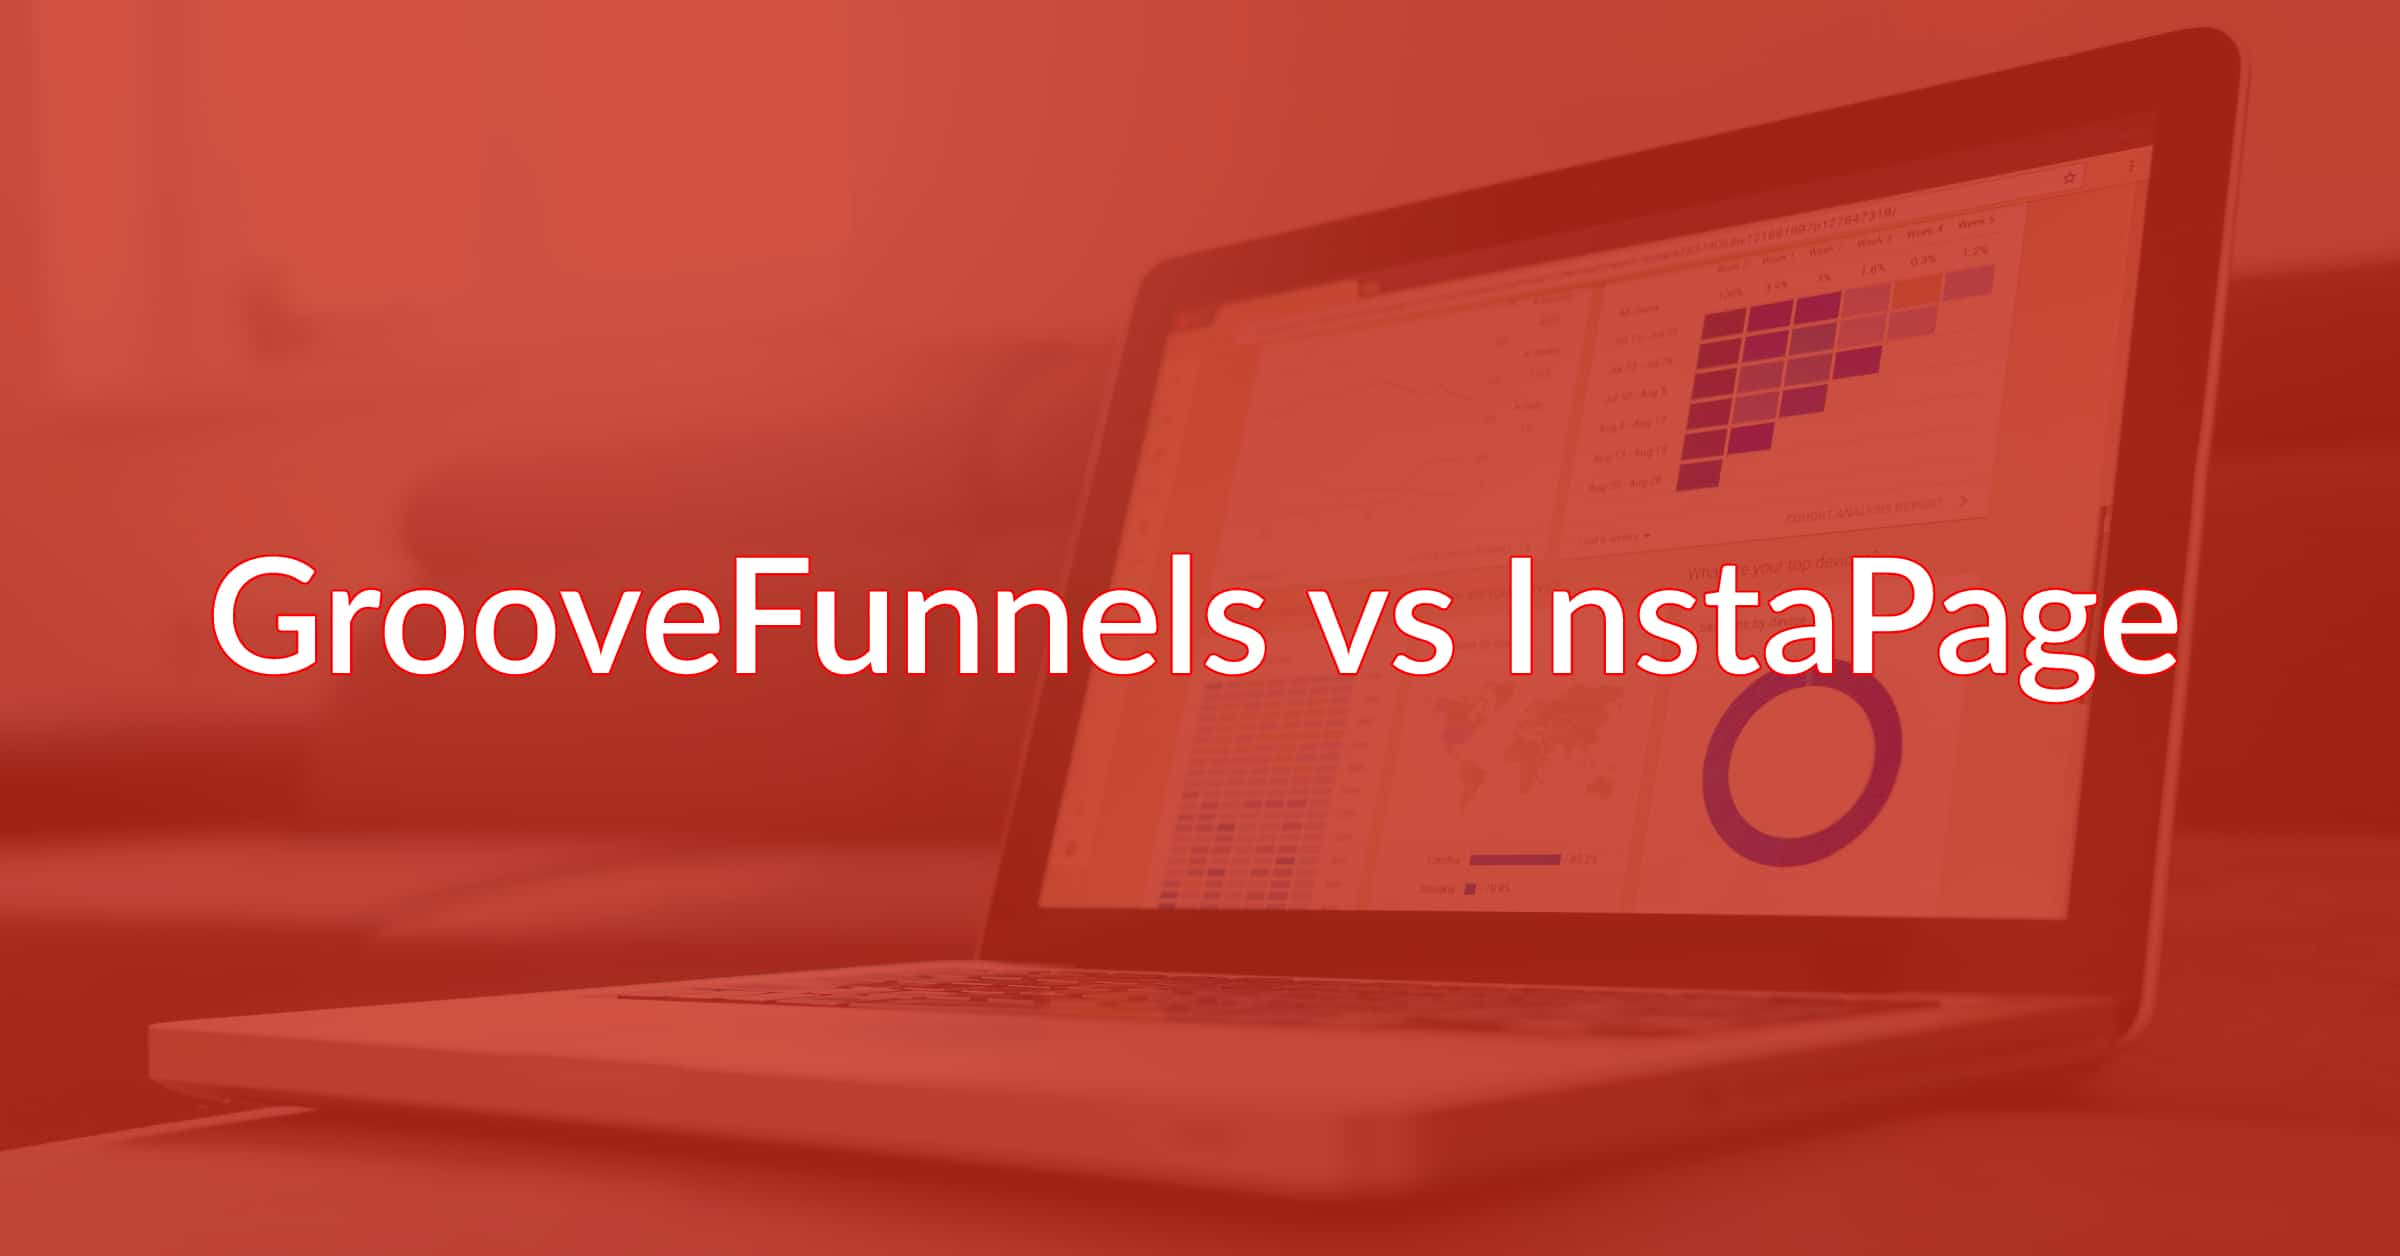 GrooveFunnels vs InstaPage: Which One Takes The Crown?